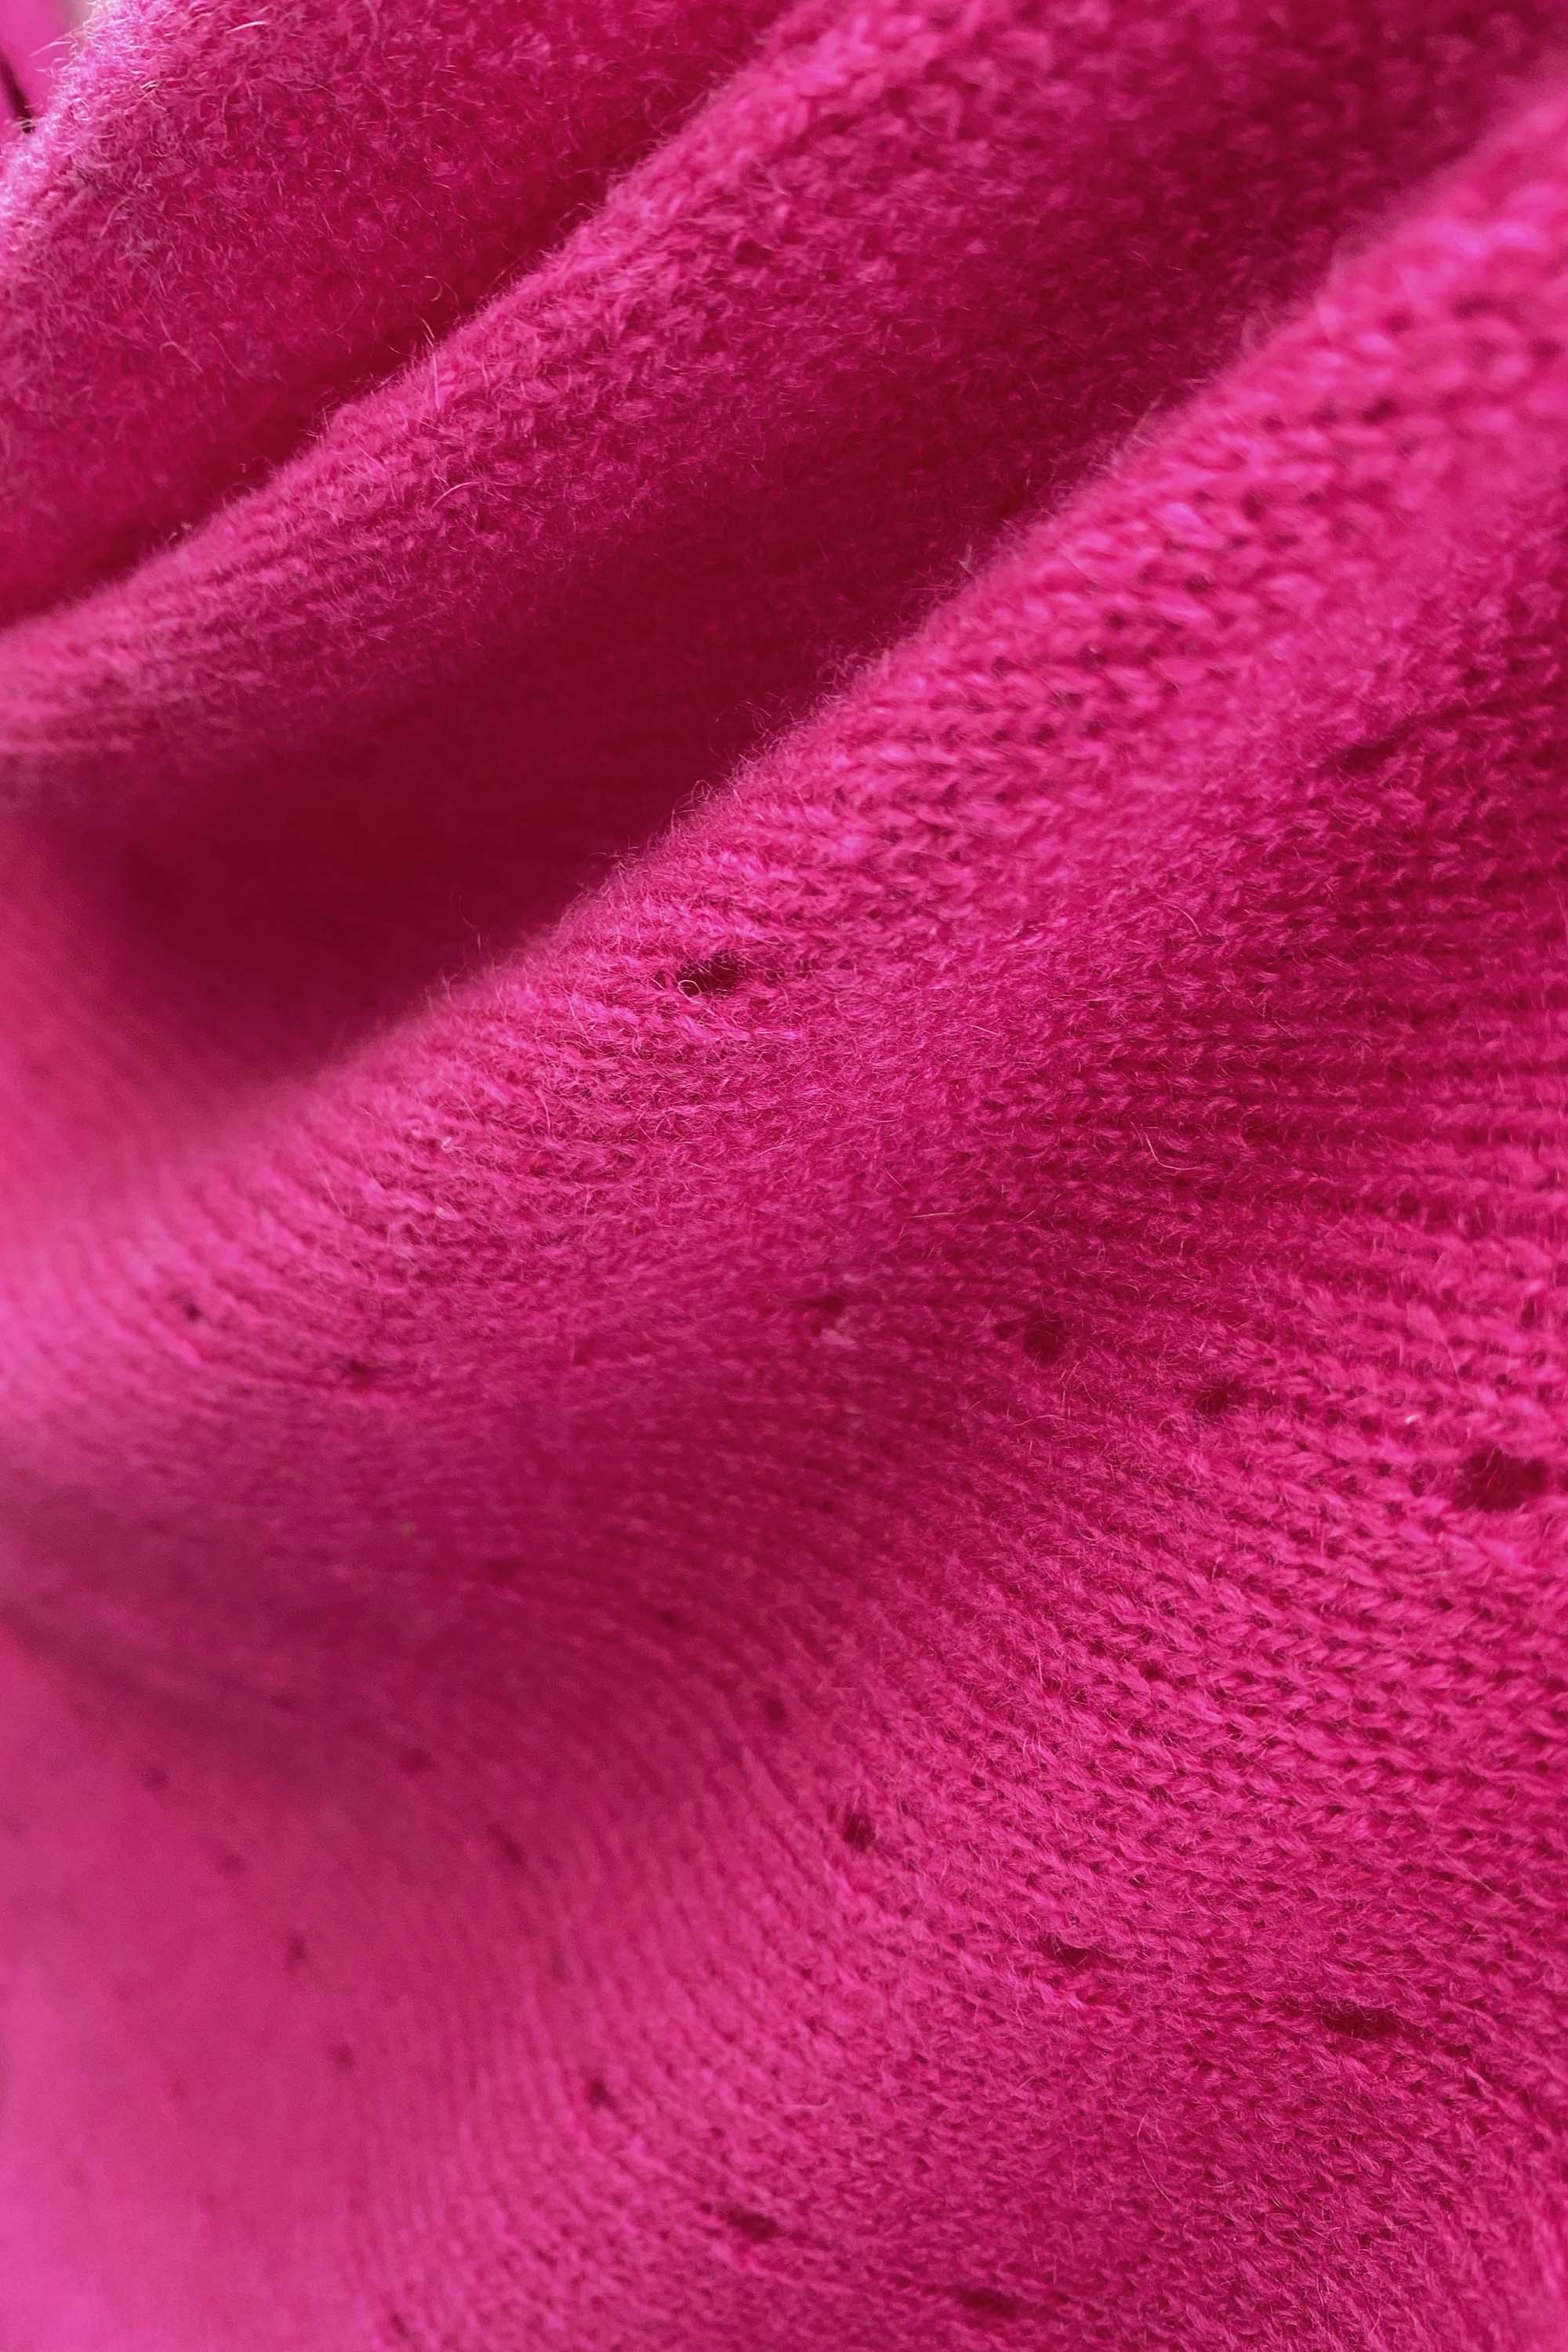 Cerise pink Cashmere Poncho UK Women damen Wrap Cape Shawls Scarf shawl cardigan light weight poncho ladies small button poncho sweater sale anniversary gift wedding present| SEMON Cashmere